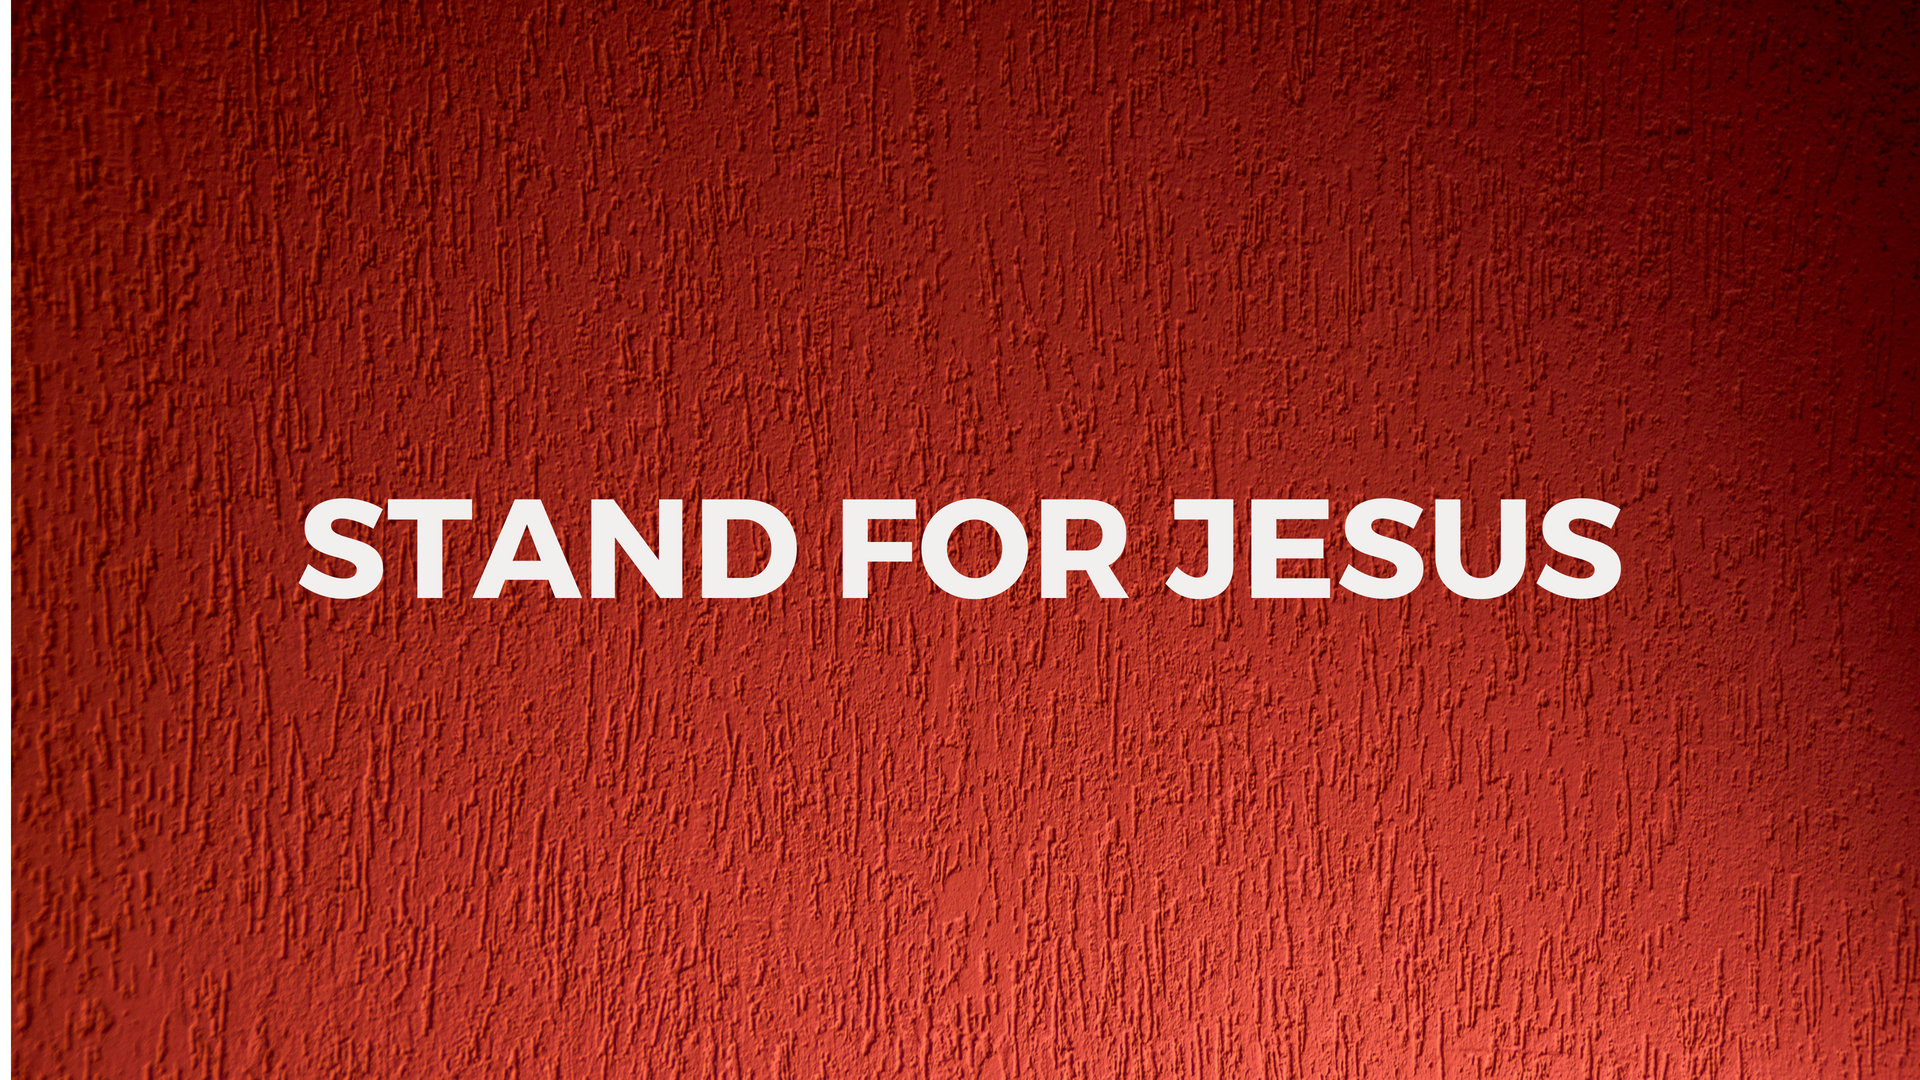 STAND FOR JESUS.jpg